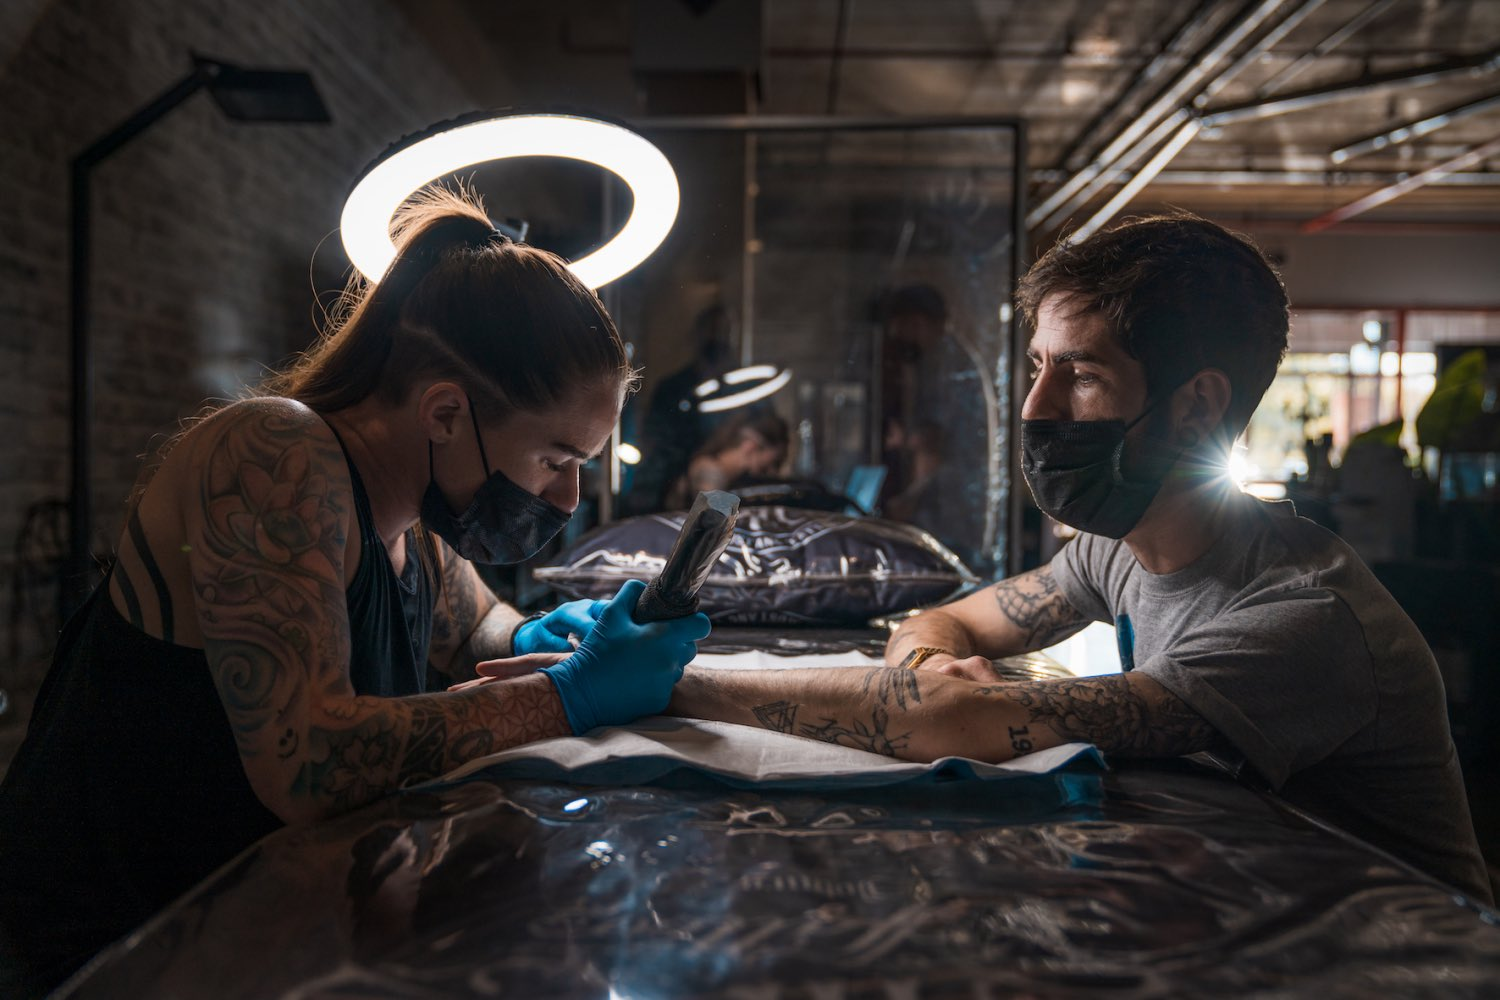 Introducing Tory Sutherland-Dadds of Sally Mustang Tattoos